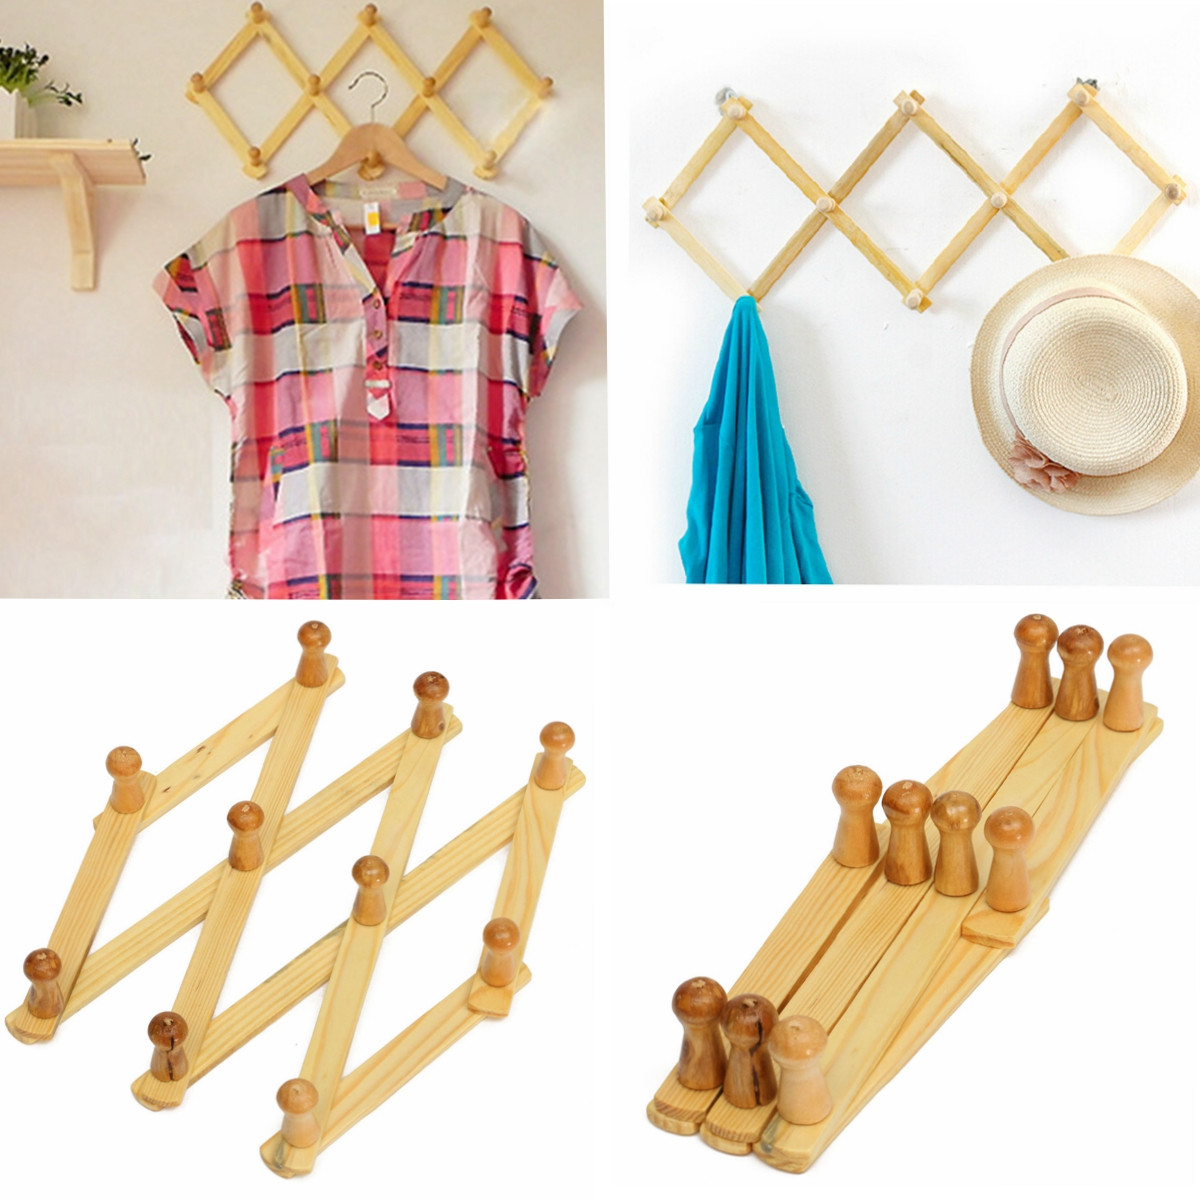 Wooden Expanding Clothes Hanger Expandable Coat Rack Holder Shelf Hat Closet Wall Hook Home Decor